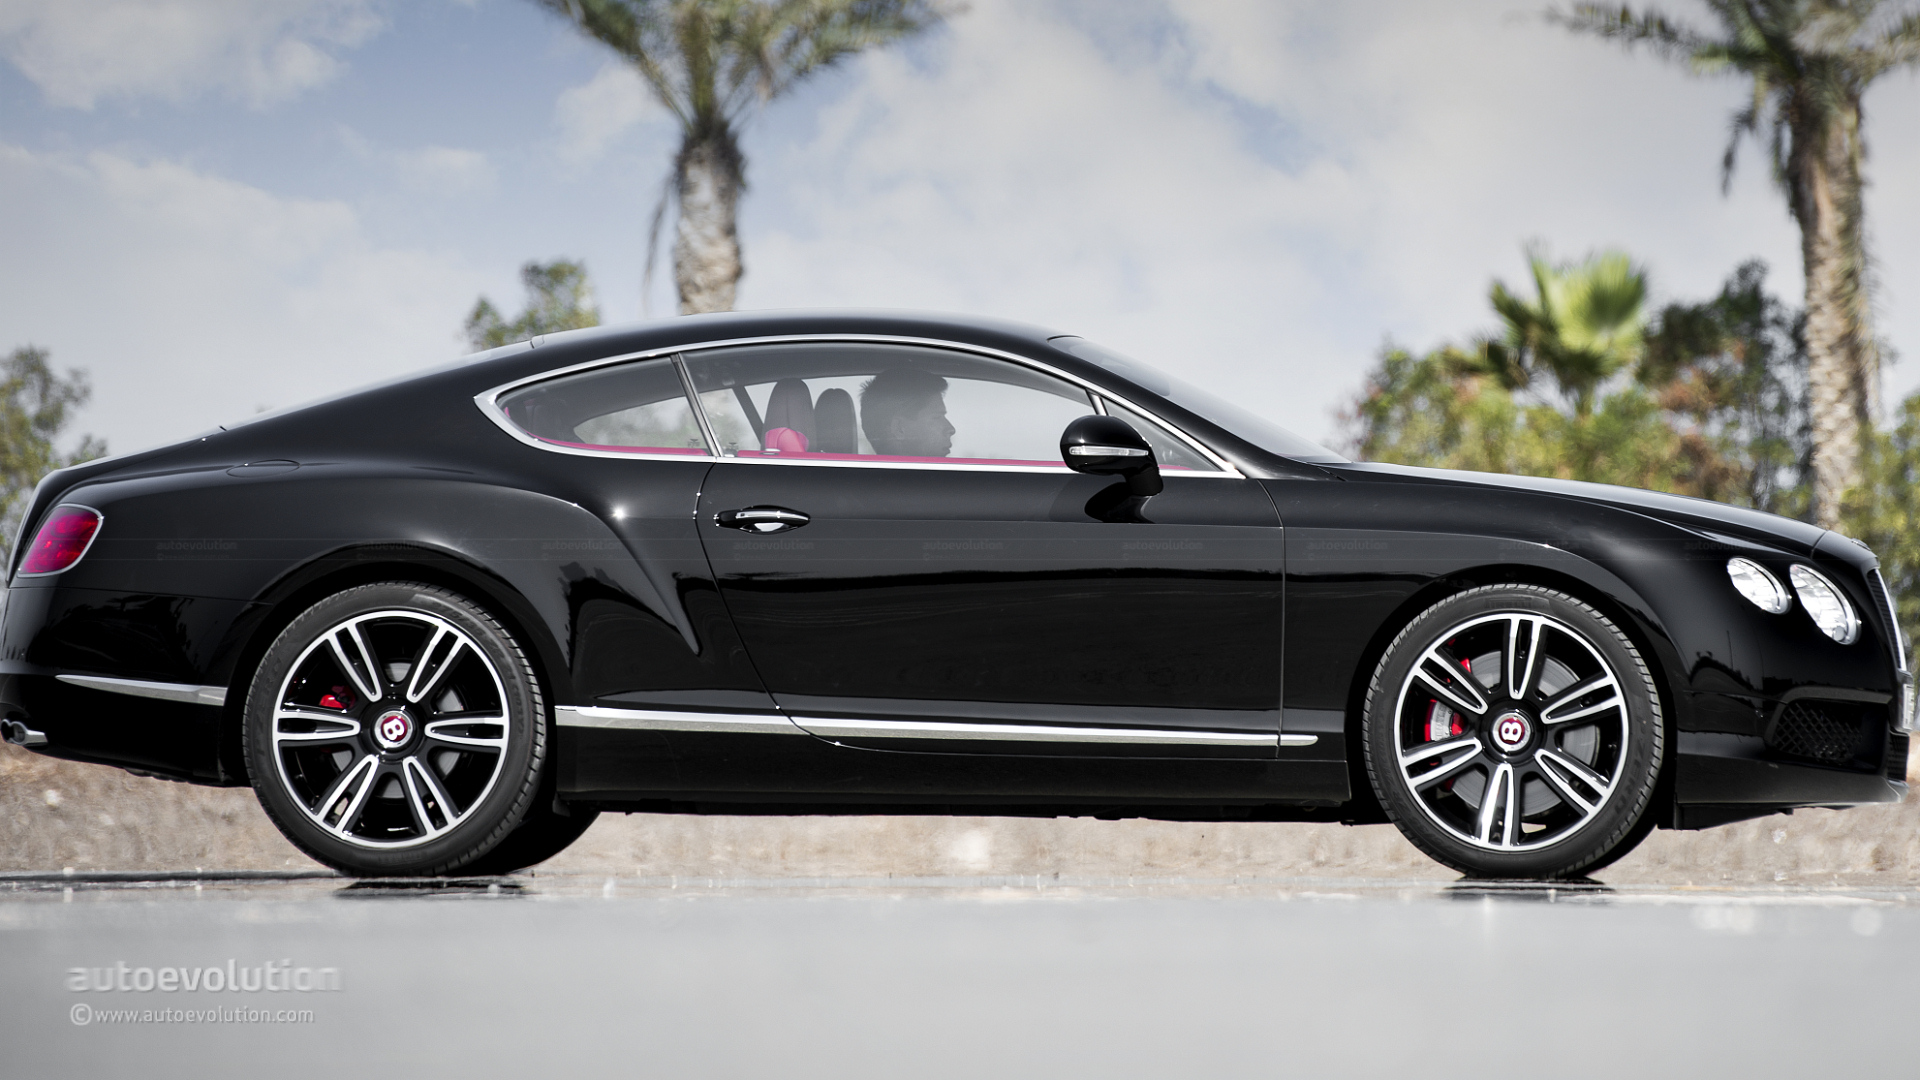 New Bentley Continental Coming In 2017 With Porsche Derived Platform Autoevolution